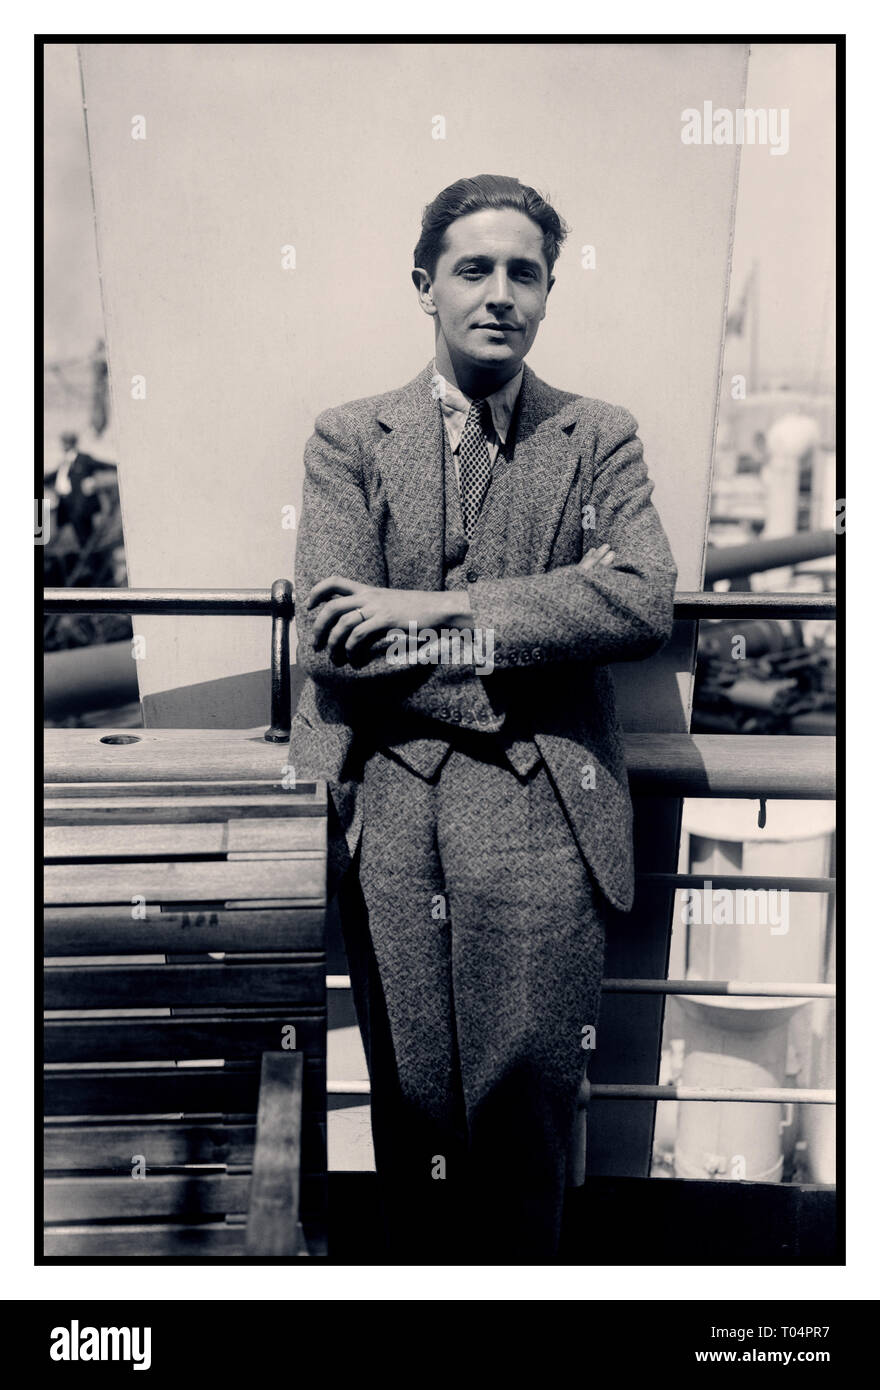 IVOR NOVELLO Vintage 1920's Informal image of Ivor Novello, Welsh actor and songwriter composer born David Ivor Davies, a Welsh composer and actor who became one of the most popular British entertainers of the first half of the 20th century. 1920s/1930s IVOR NOVELLO (1893-1951). Photograph, early 20th century 1900's. - Stock Image